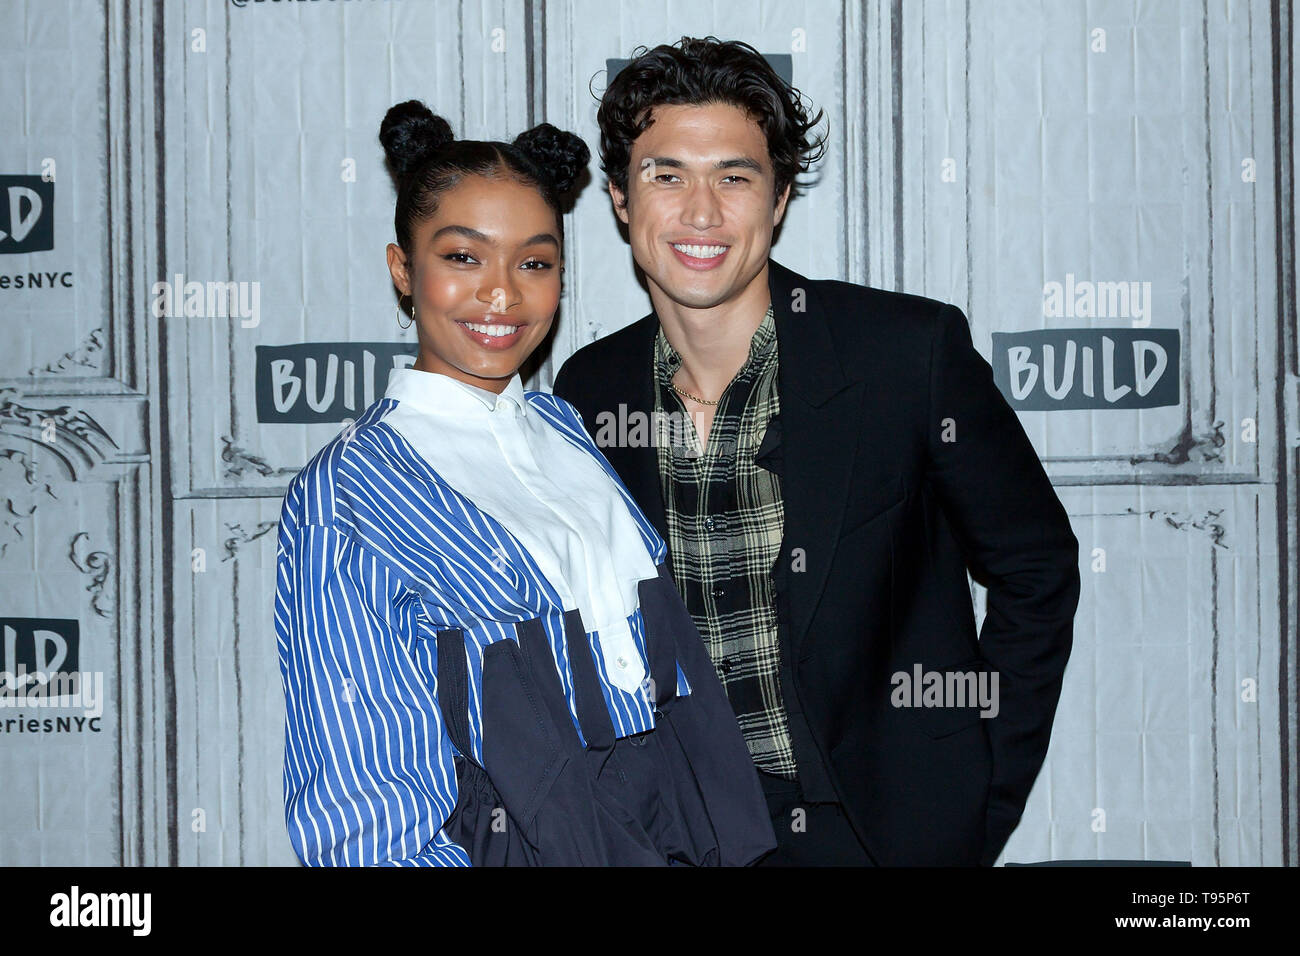 New York, USA. 16 May, 2019. Yara Shahidi, Charles Melton at the BUILD Series with Charles Melton and Yara Shahidi, discussing the new film 'The Sun Is Also a Star' at BUILD Studio. Credit: Steve Mack/Alamy Live News - Stock Image